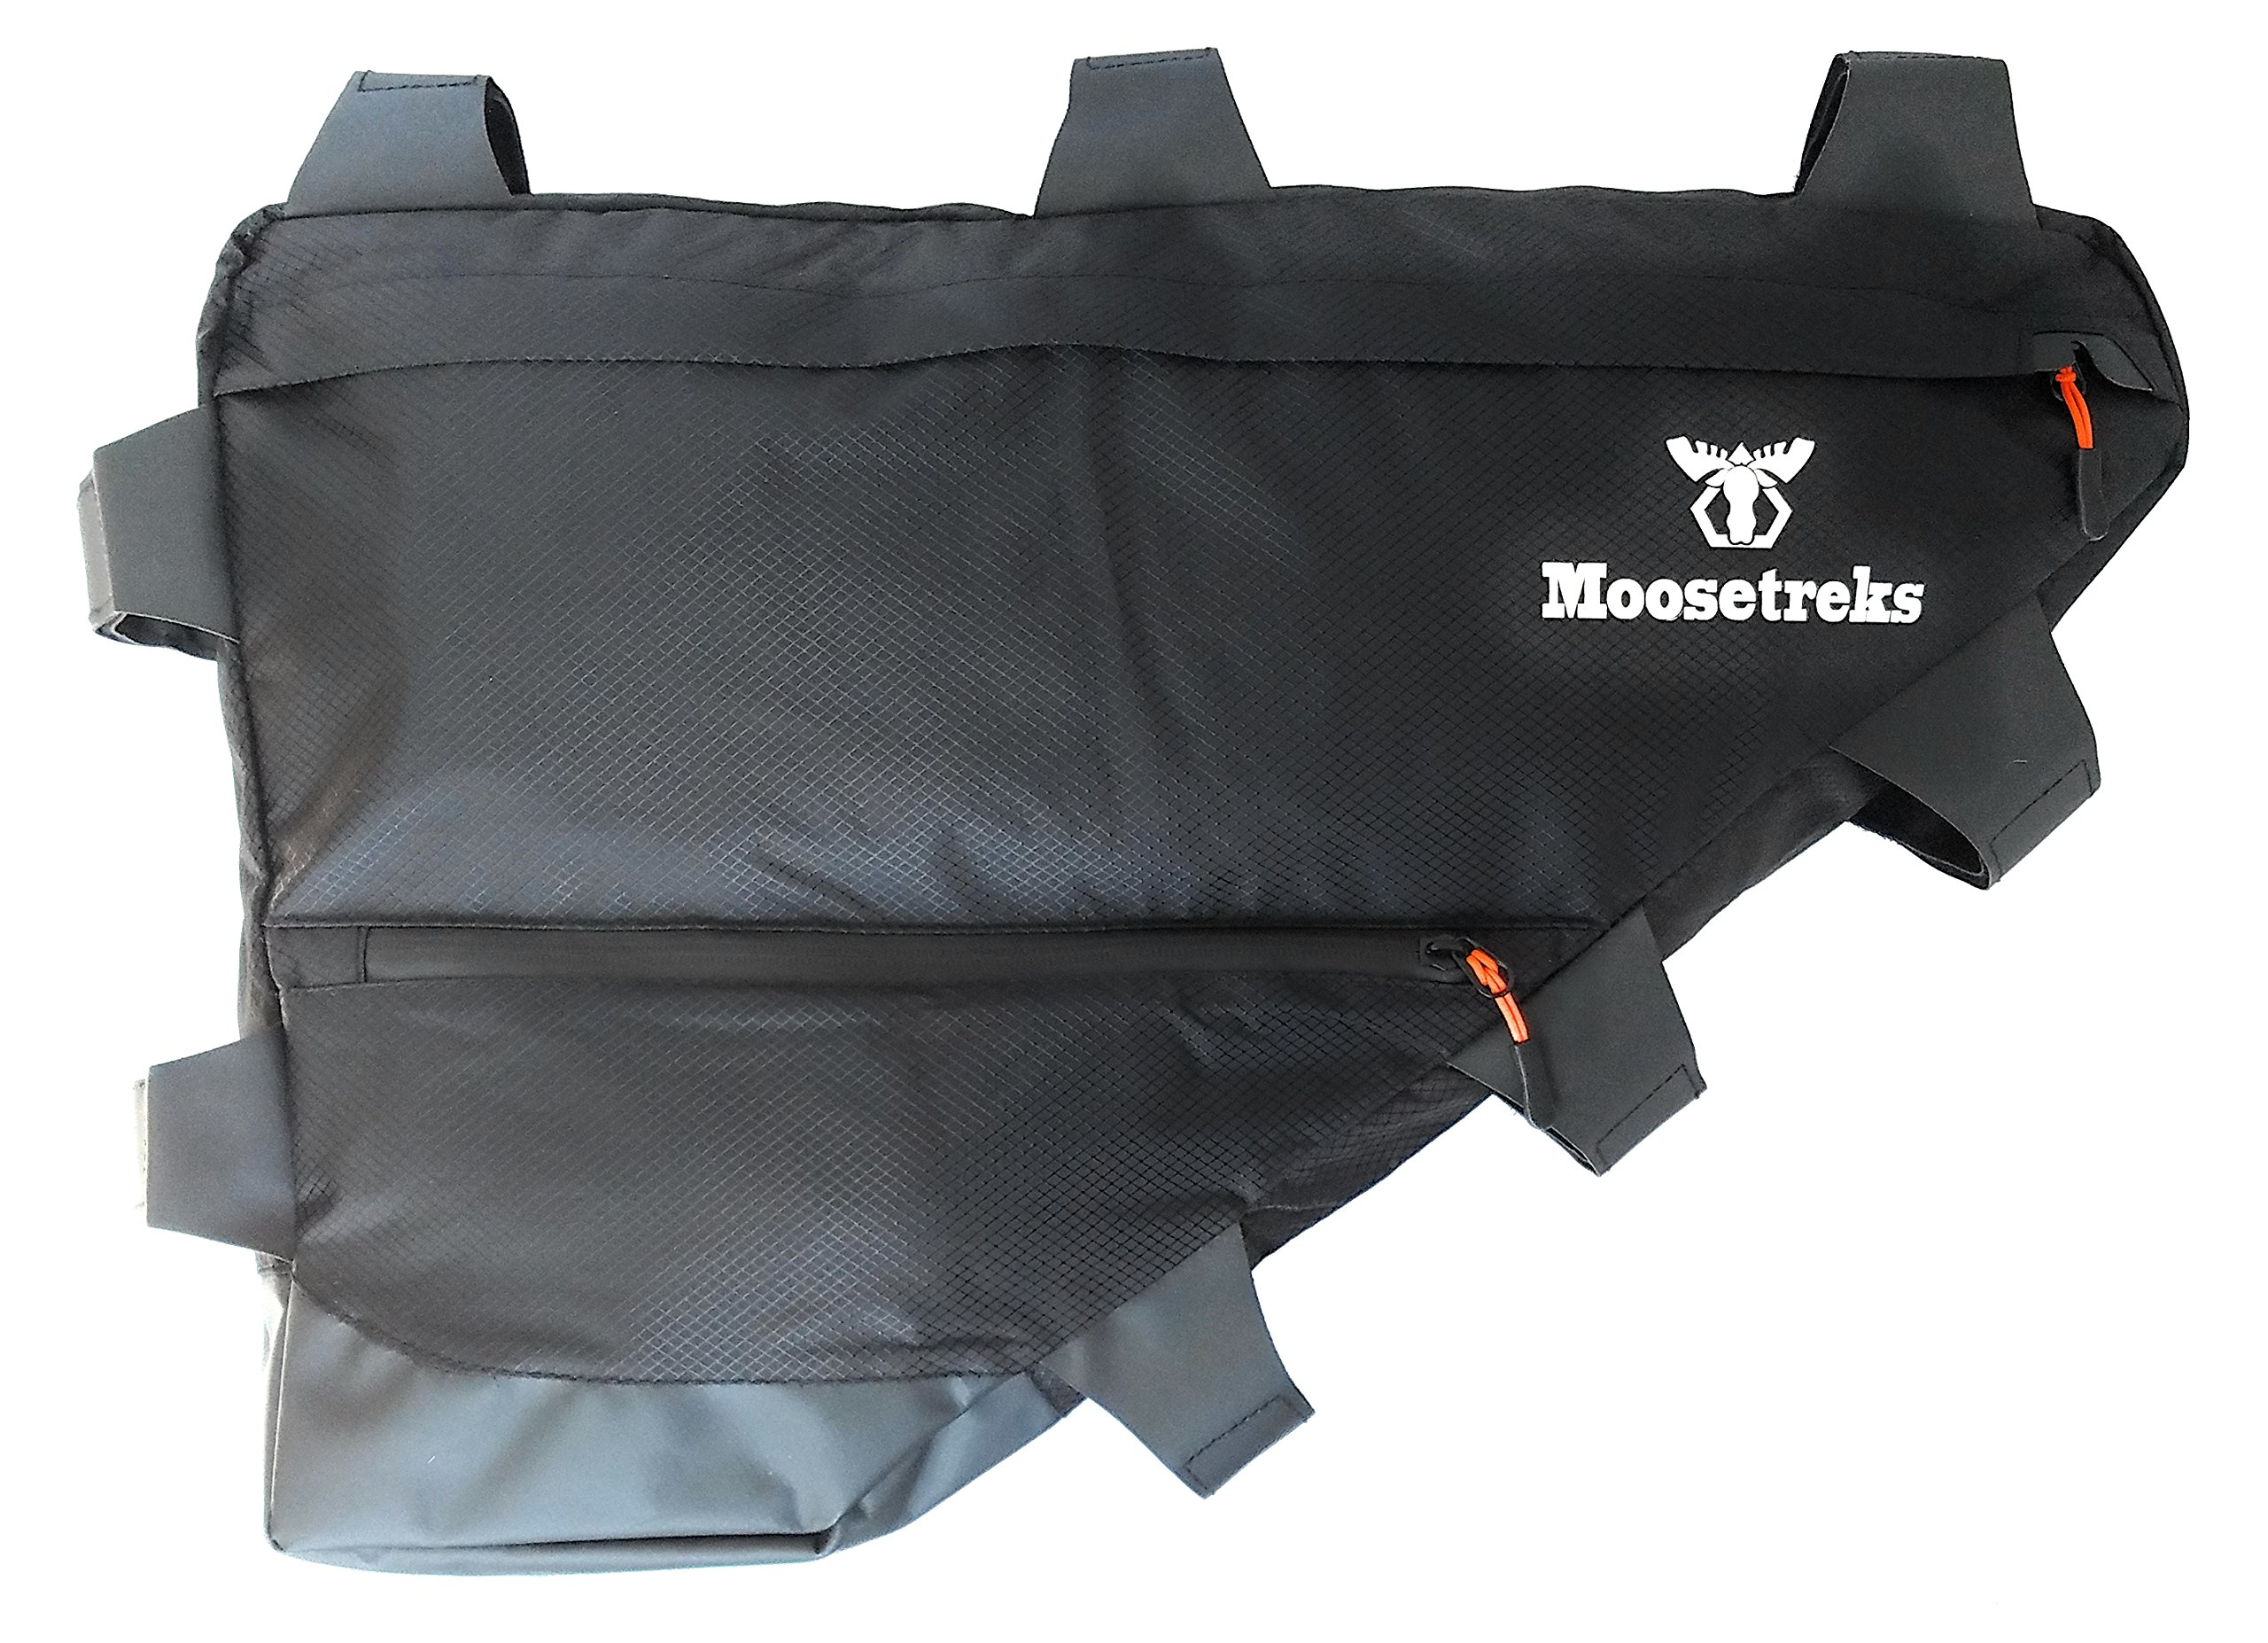 Moosetreks Touring/Road Bike Full Frame Bag (Medium) by Moosetreks